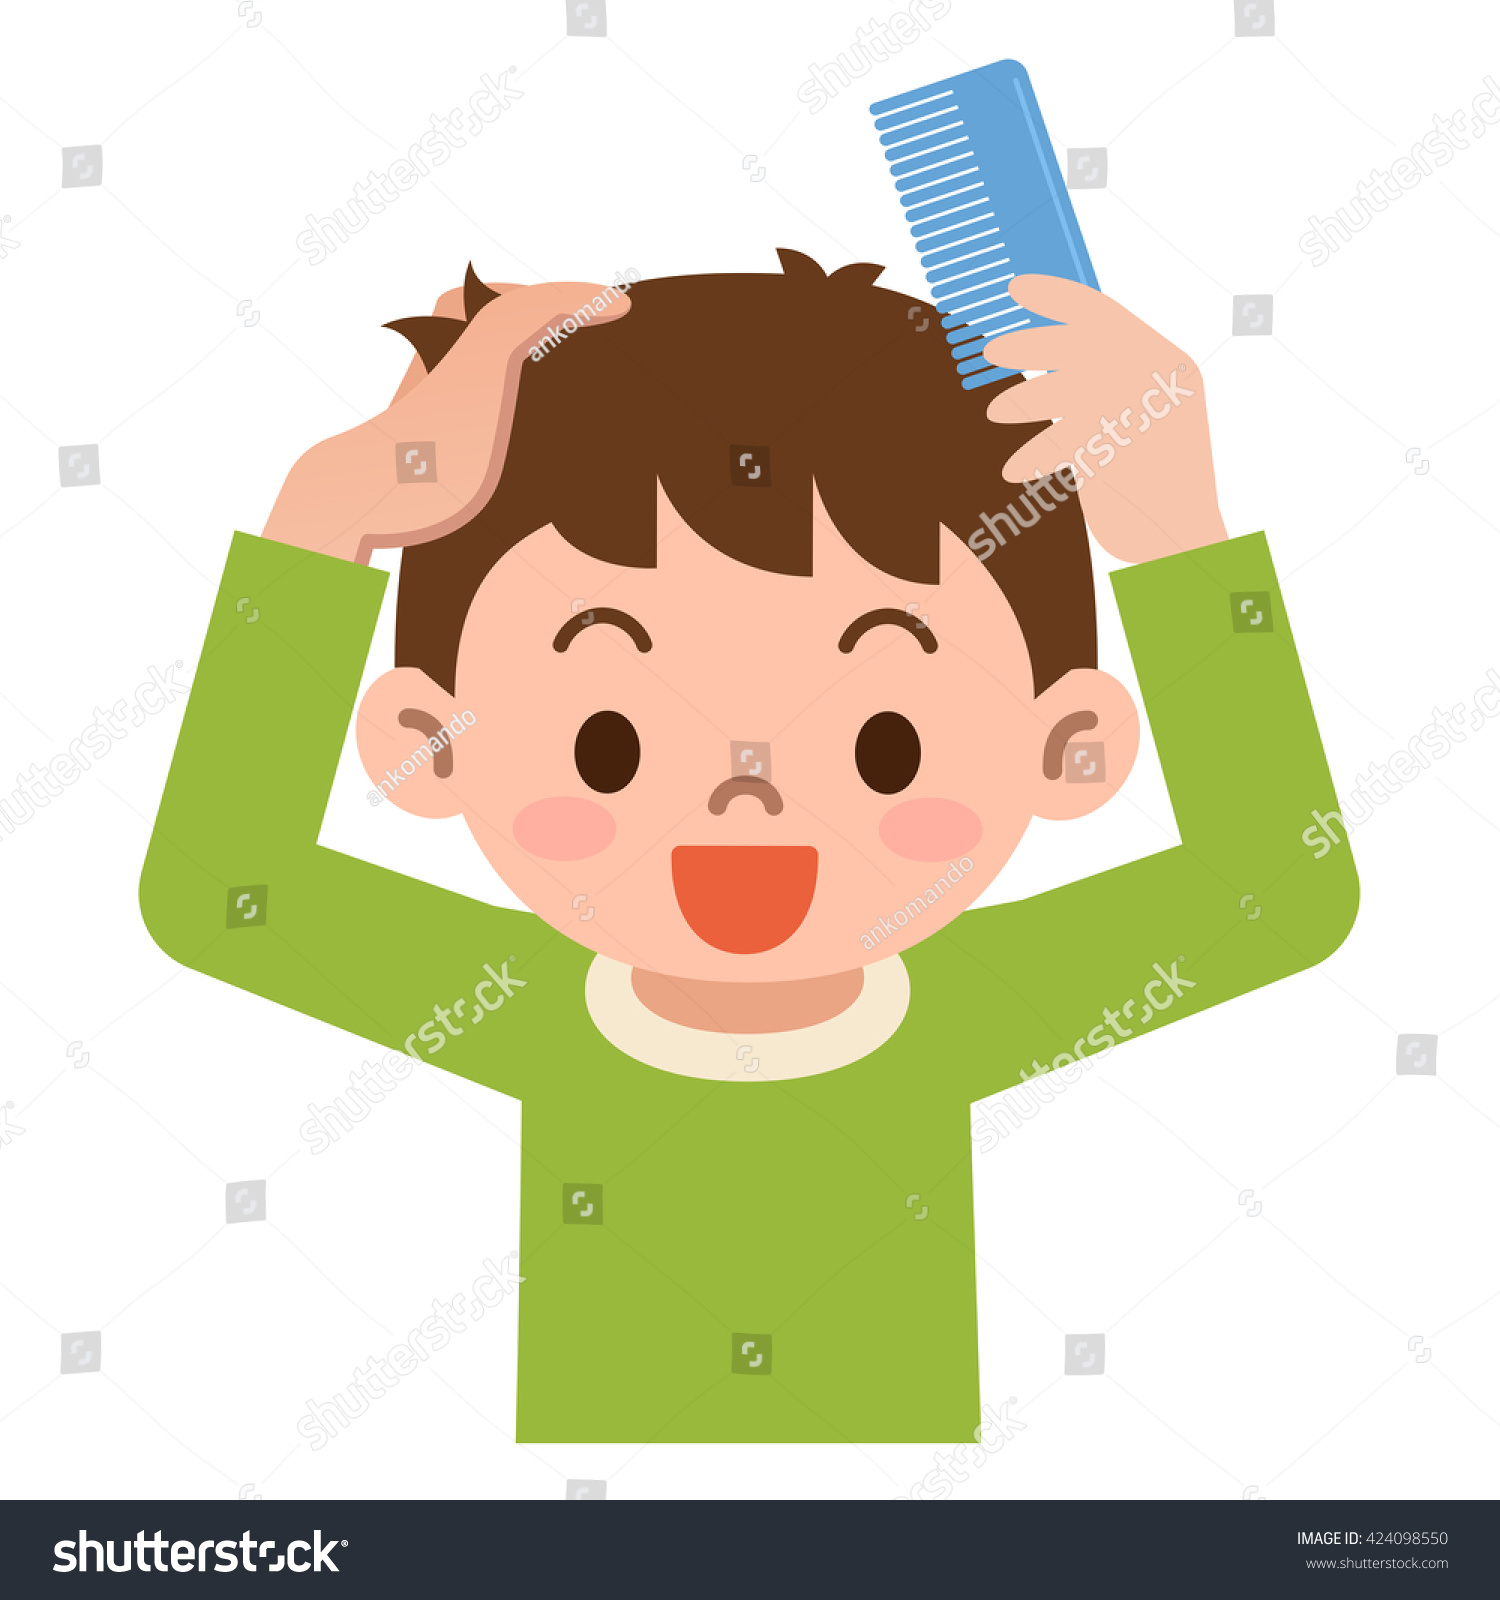 Combing hair clipart 8 » Clipart Station.